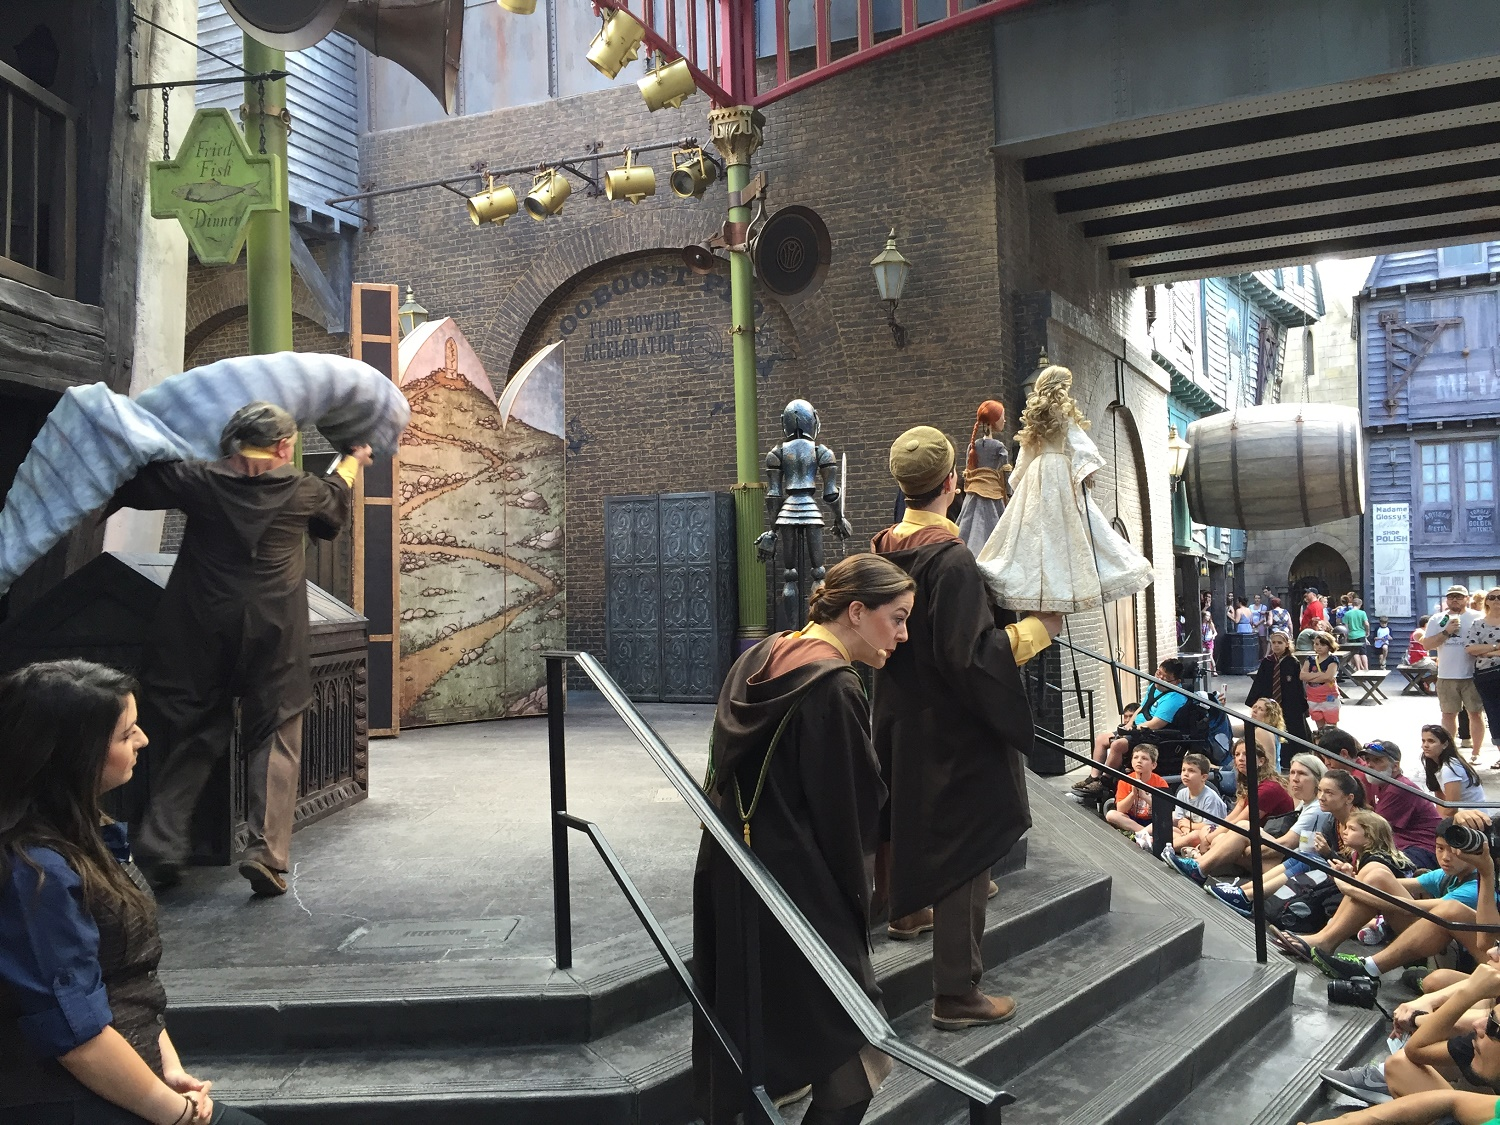 The Tales of Beedle the Bard is a live stage show featuring puppets and a story from The Tales of Beedle the Bard by JK Rowling.